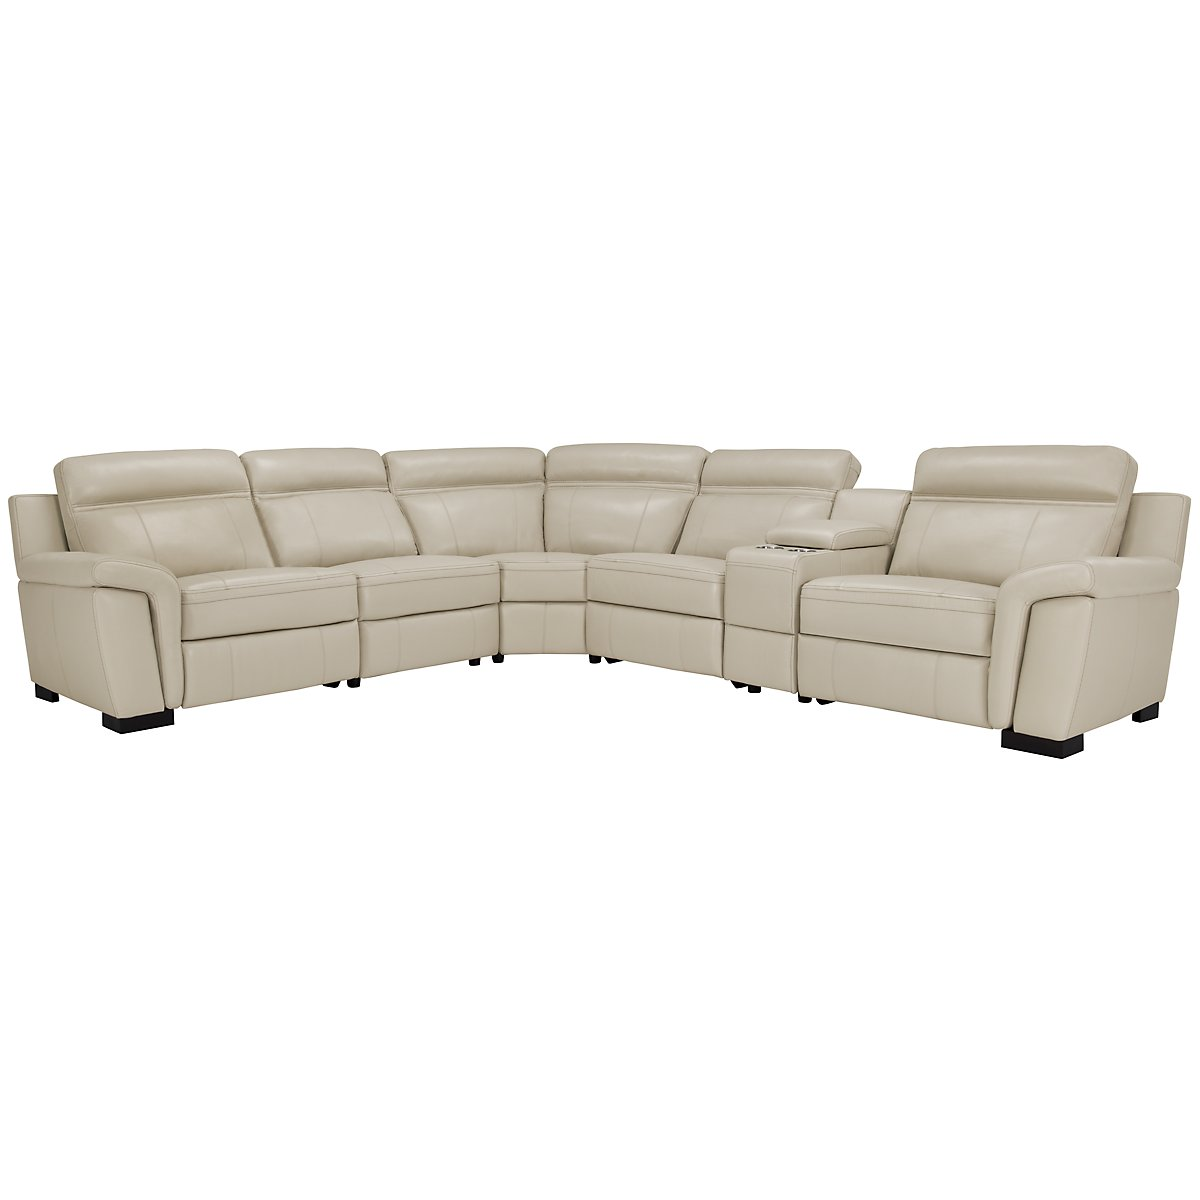 Albany Lt Gray Leather & Vinyl Small Two-Arm Manually Reclining Sectional